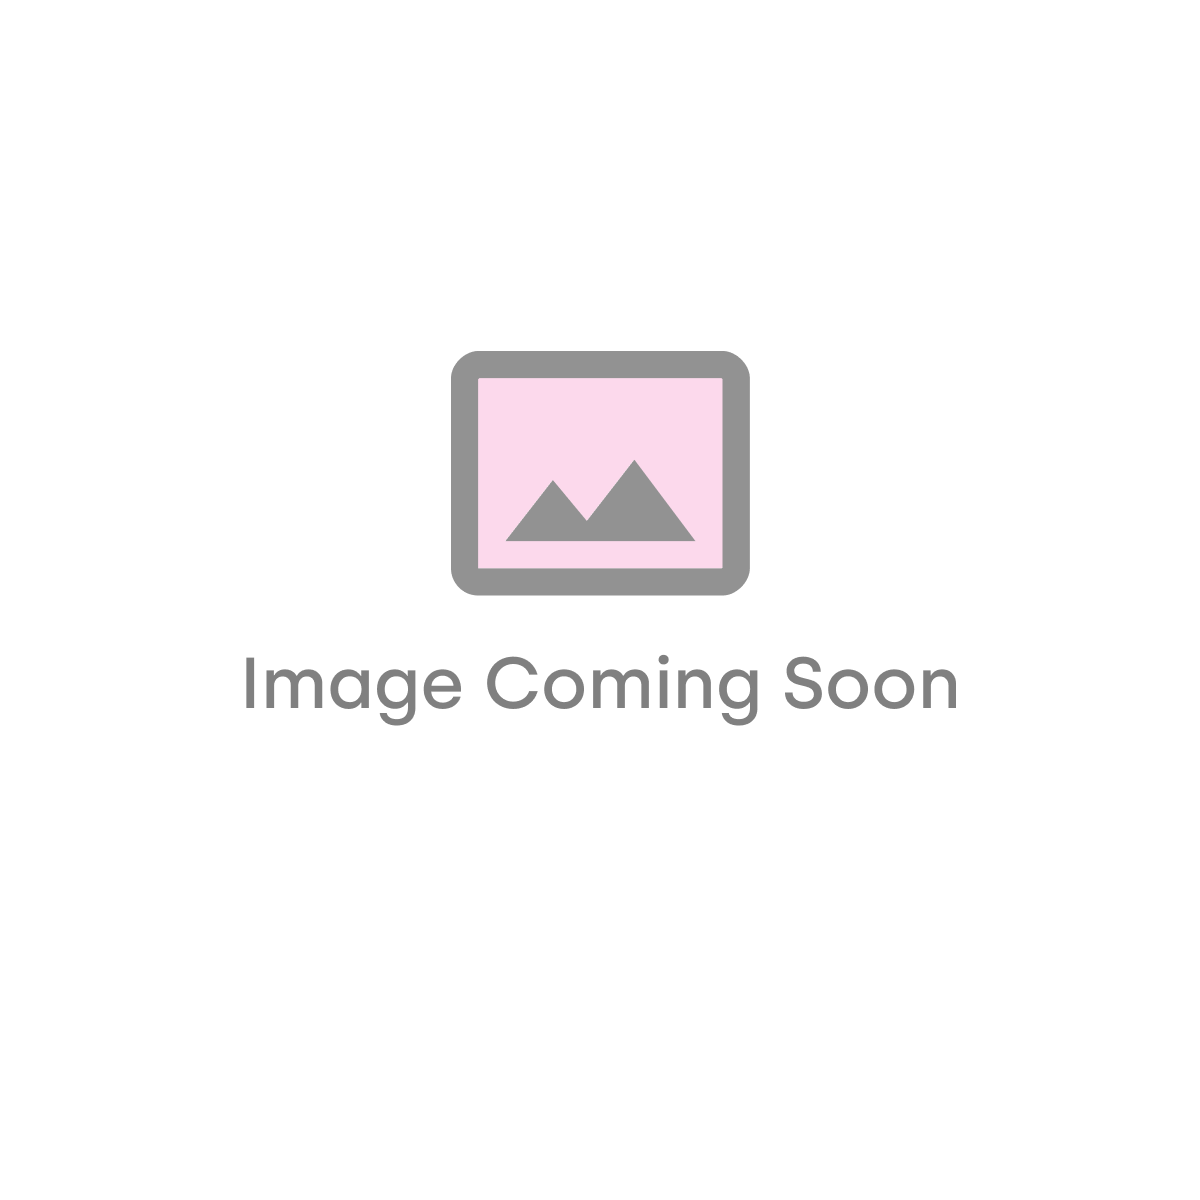 Roma Straight Heated Towel Rail  - 800mm x 600mm - Anthracite (19721)